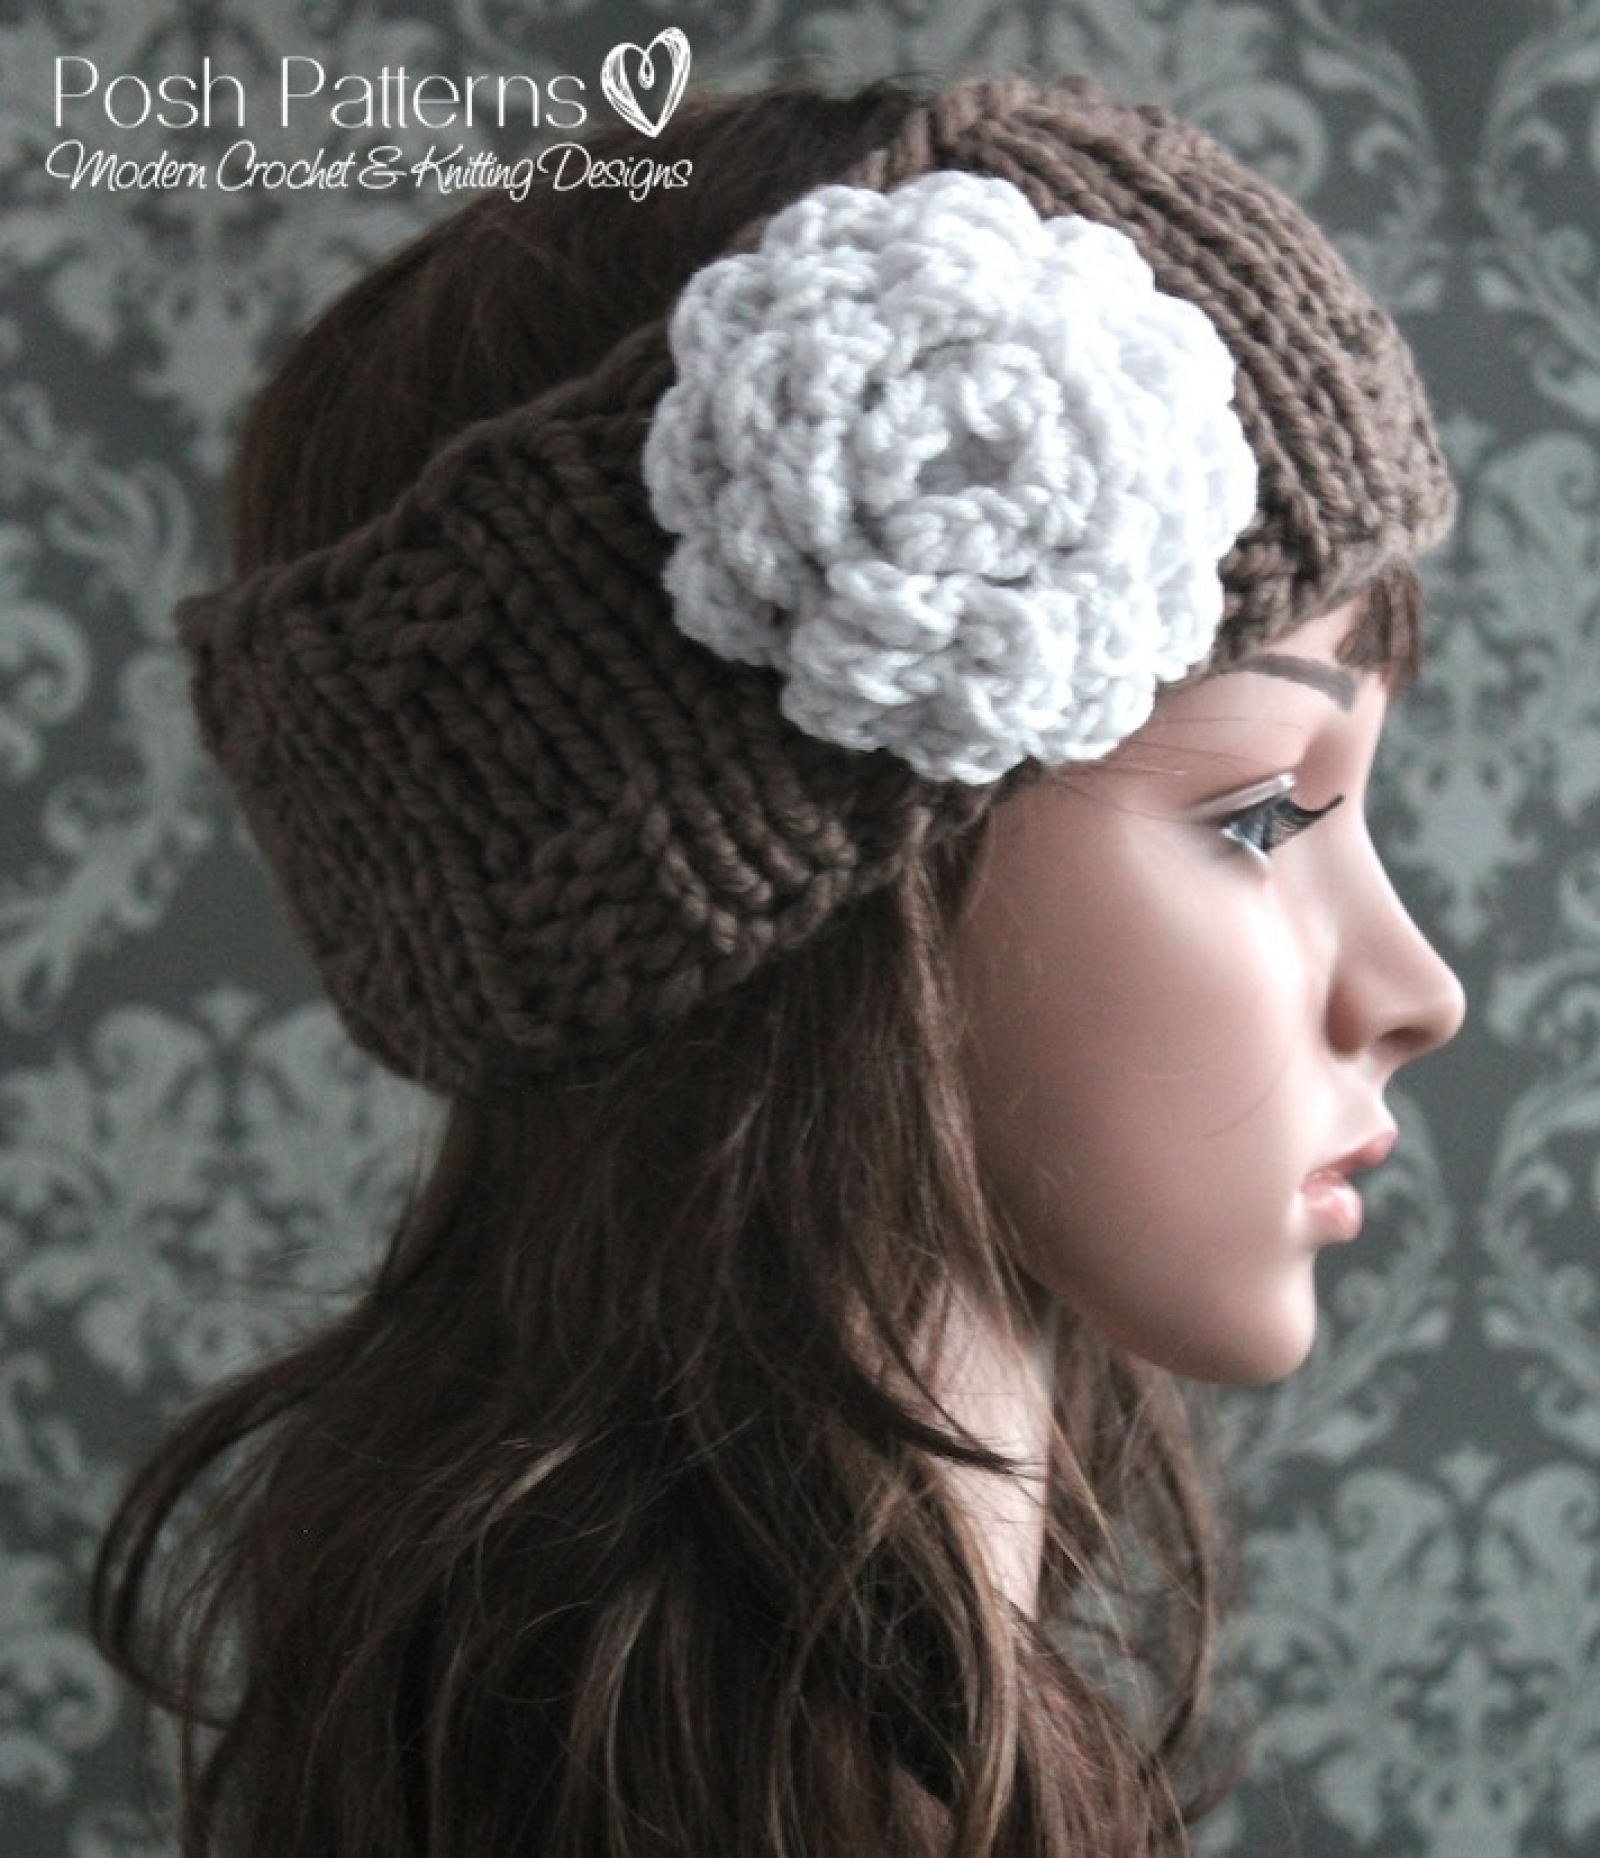 Knitted Headband Patterns With Flower : Headband Knitting Pattern - Knit Ear Warmer Pattern